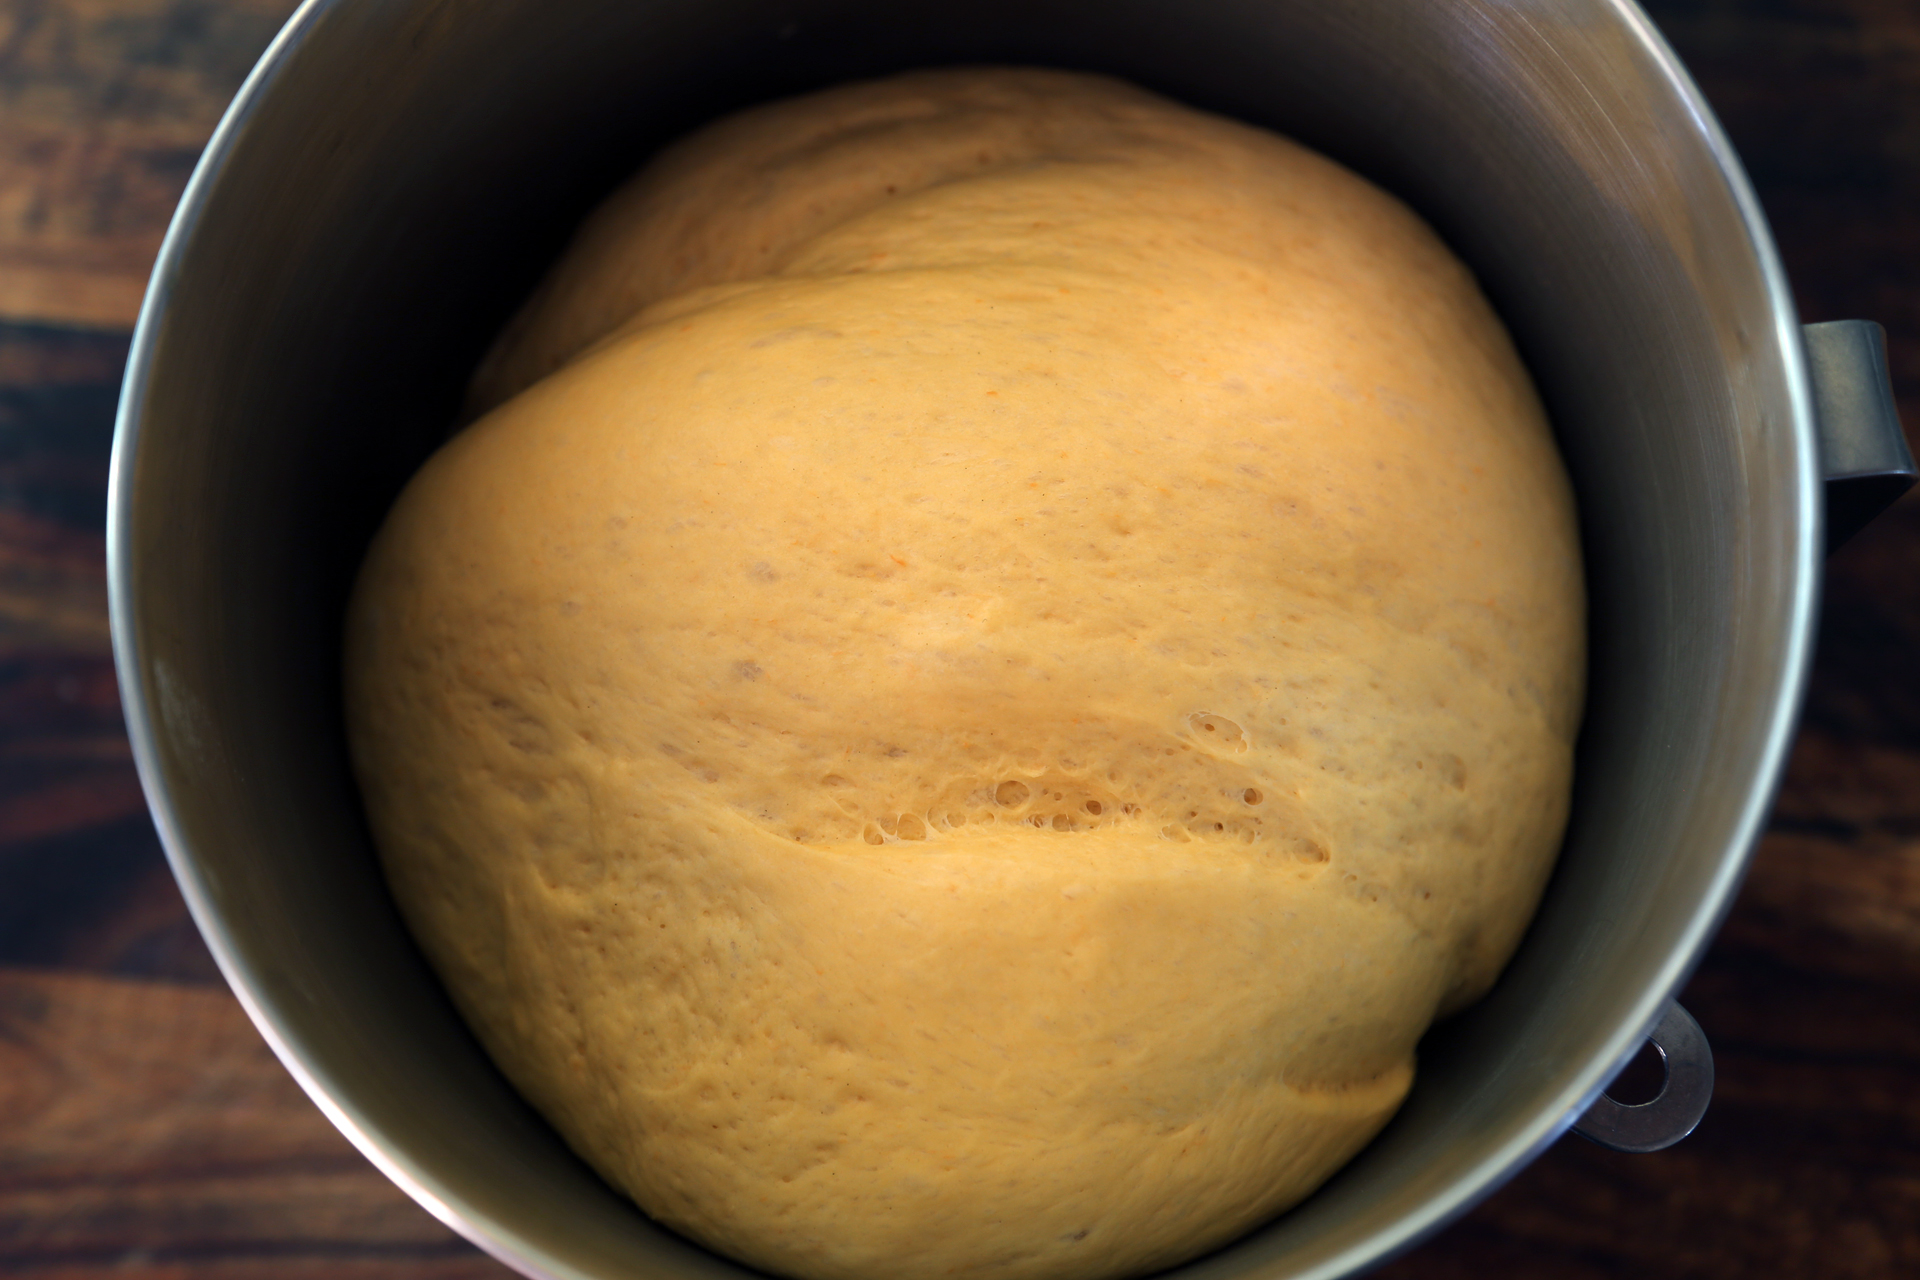 Form the dough into a ball, cover the bowl with plastic wrap, and let rise in a warm, draft-free spot until doubled, about 1 hour.